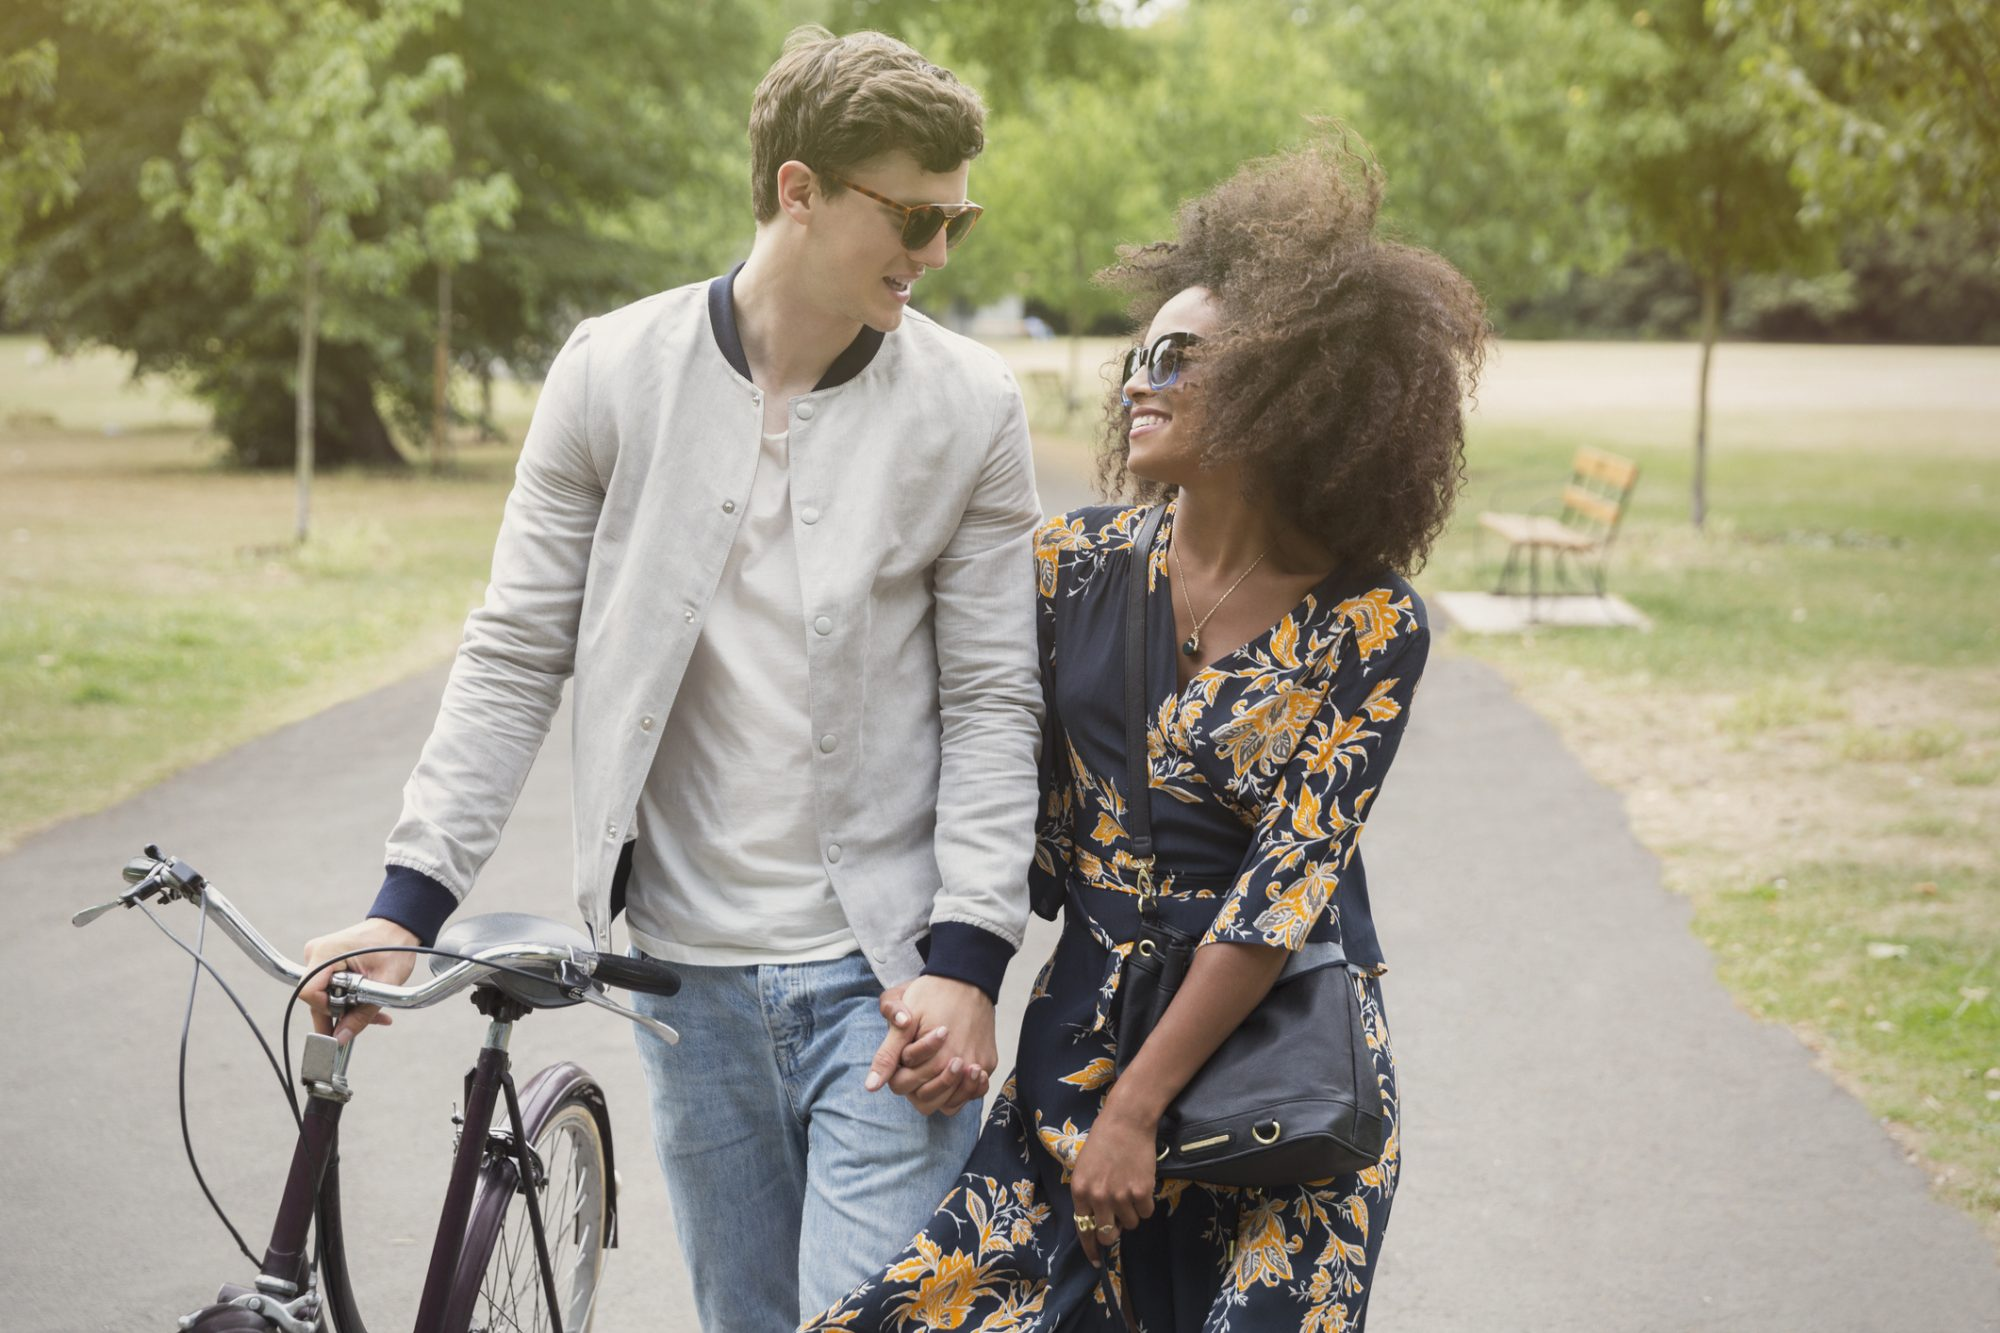 Couple walking with bicycle in park